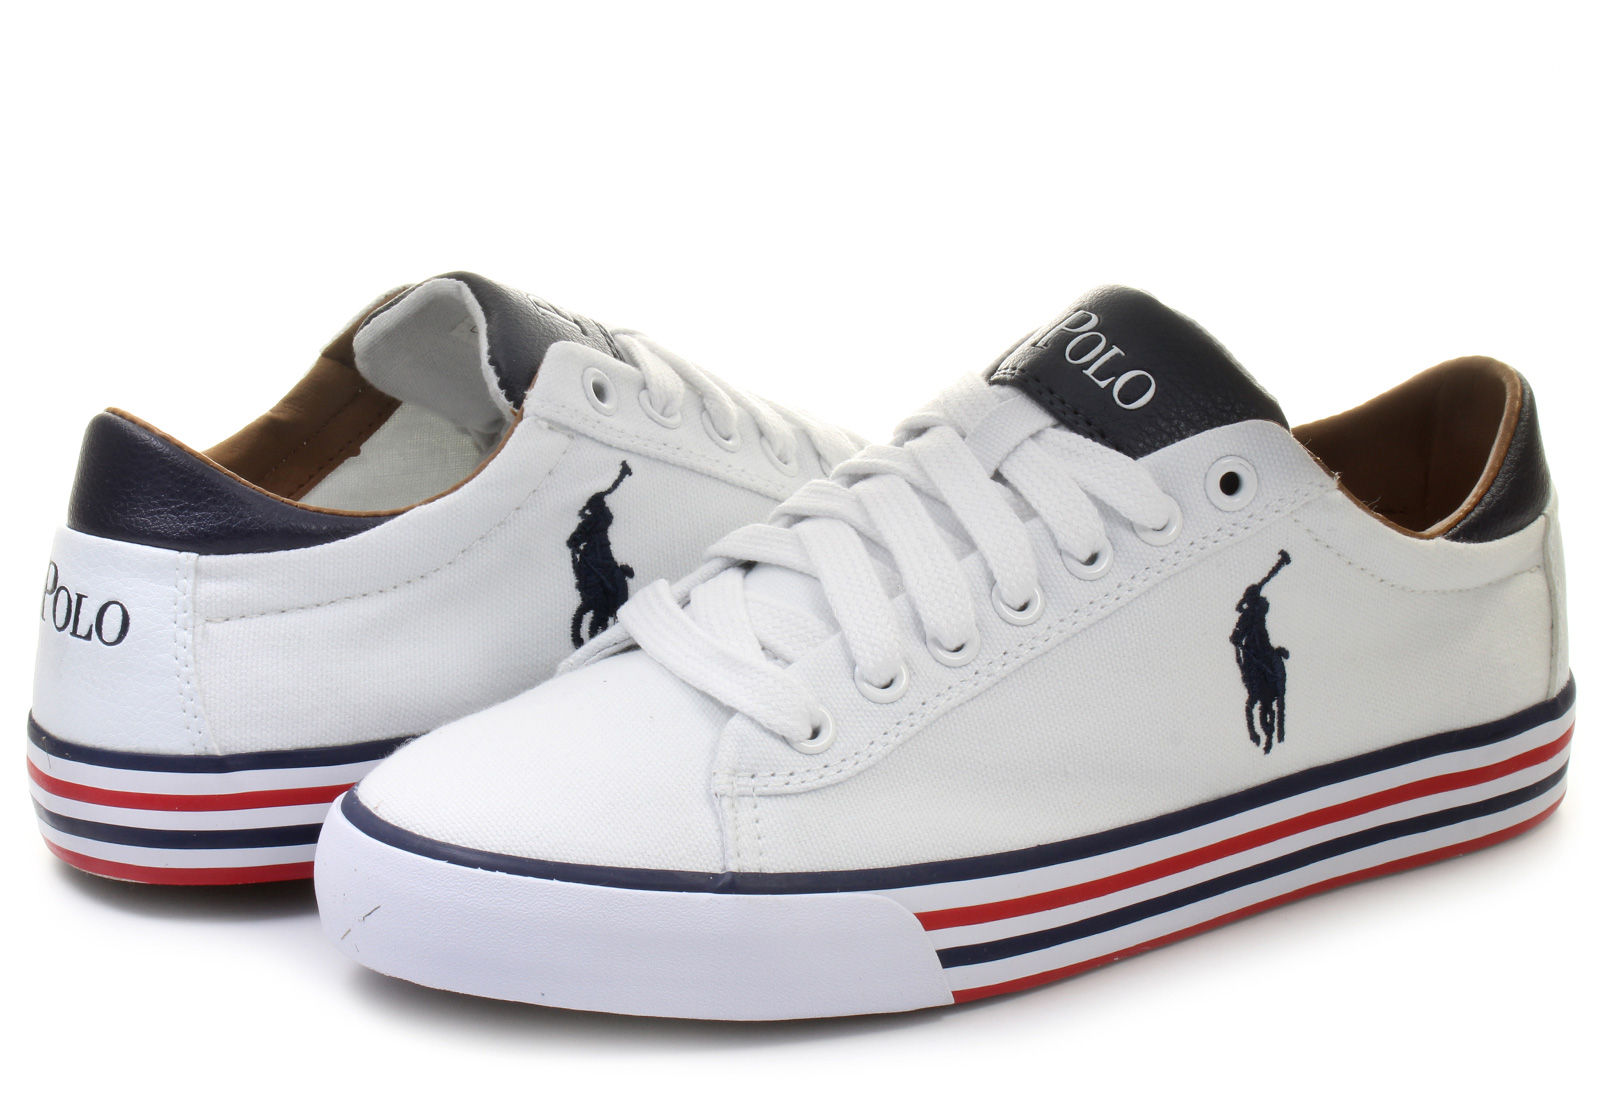 Polo Ralph Lauren Cipő - Harvey - Ne - 816190758EAD - Office Shoes ... c505752955